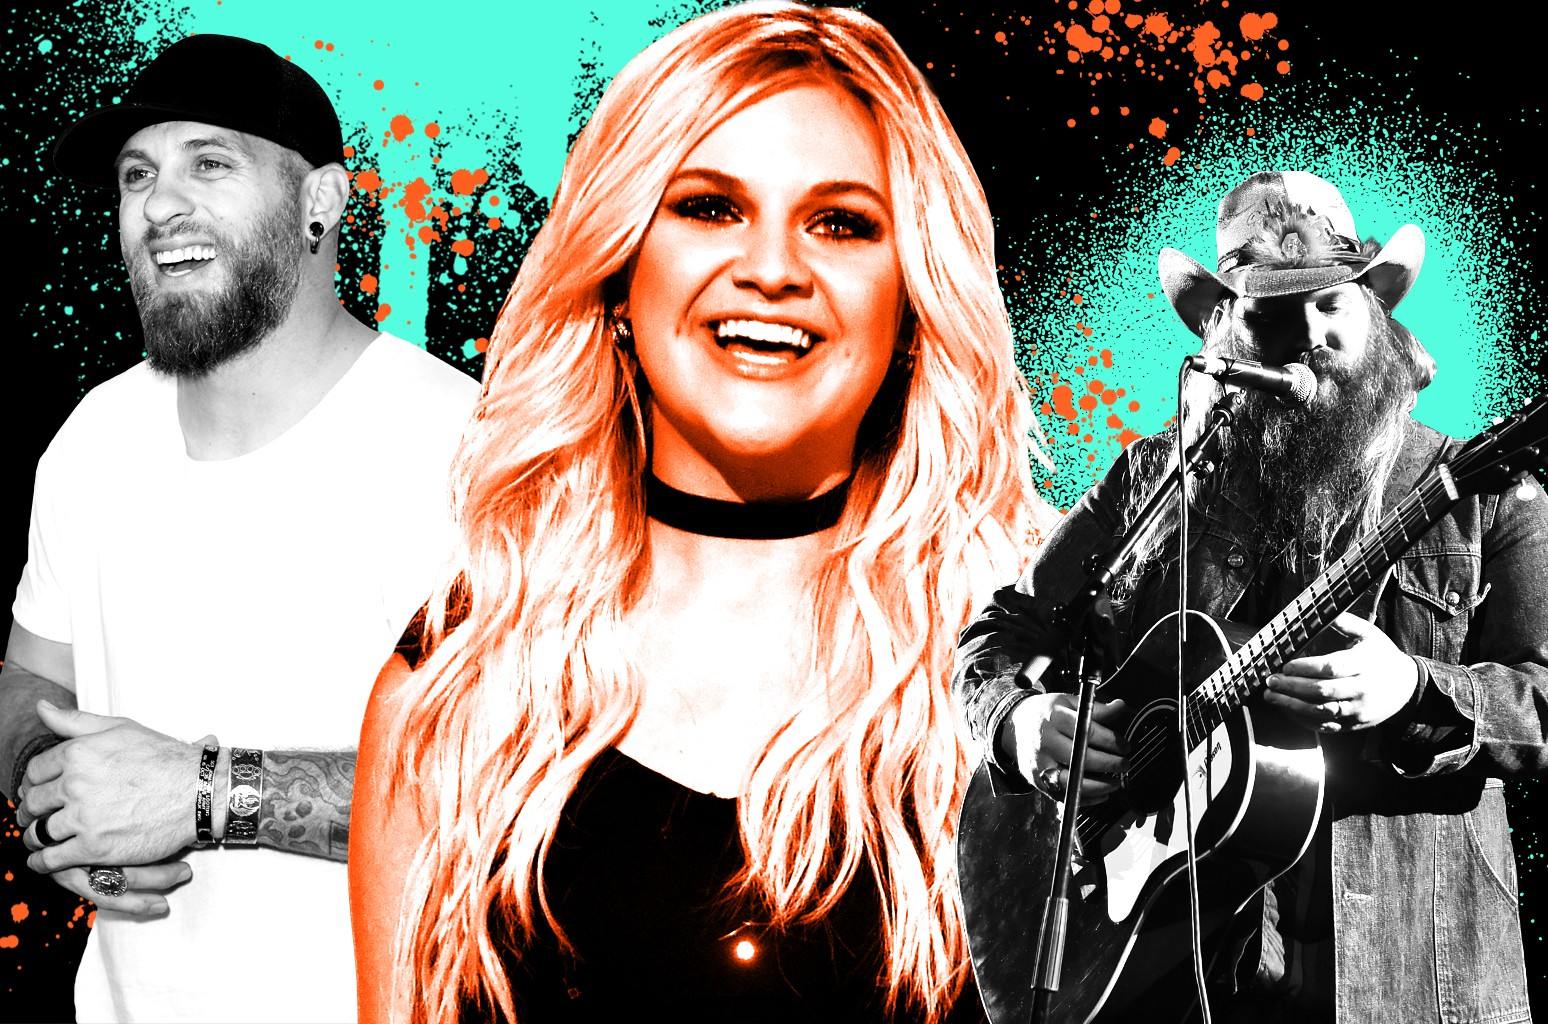 From left: Brantley Gilbert, Kelsea Ballerini & Chris Stapleton